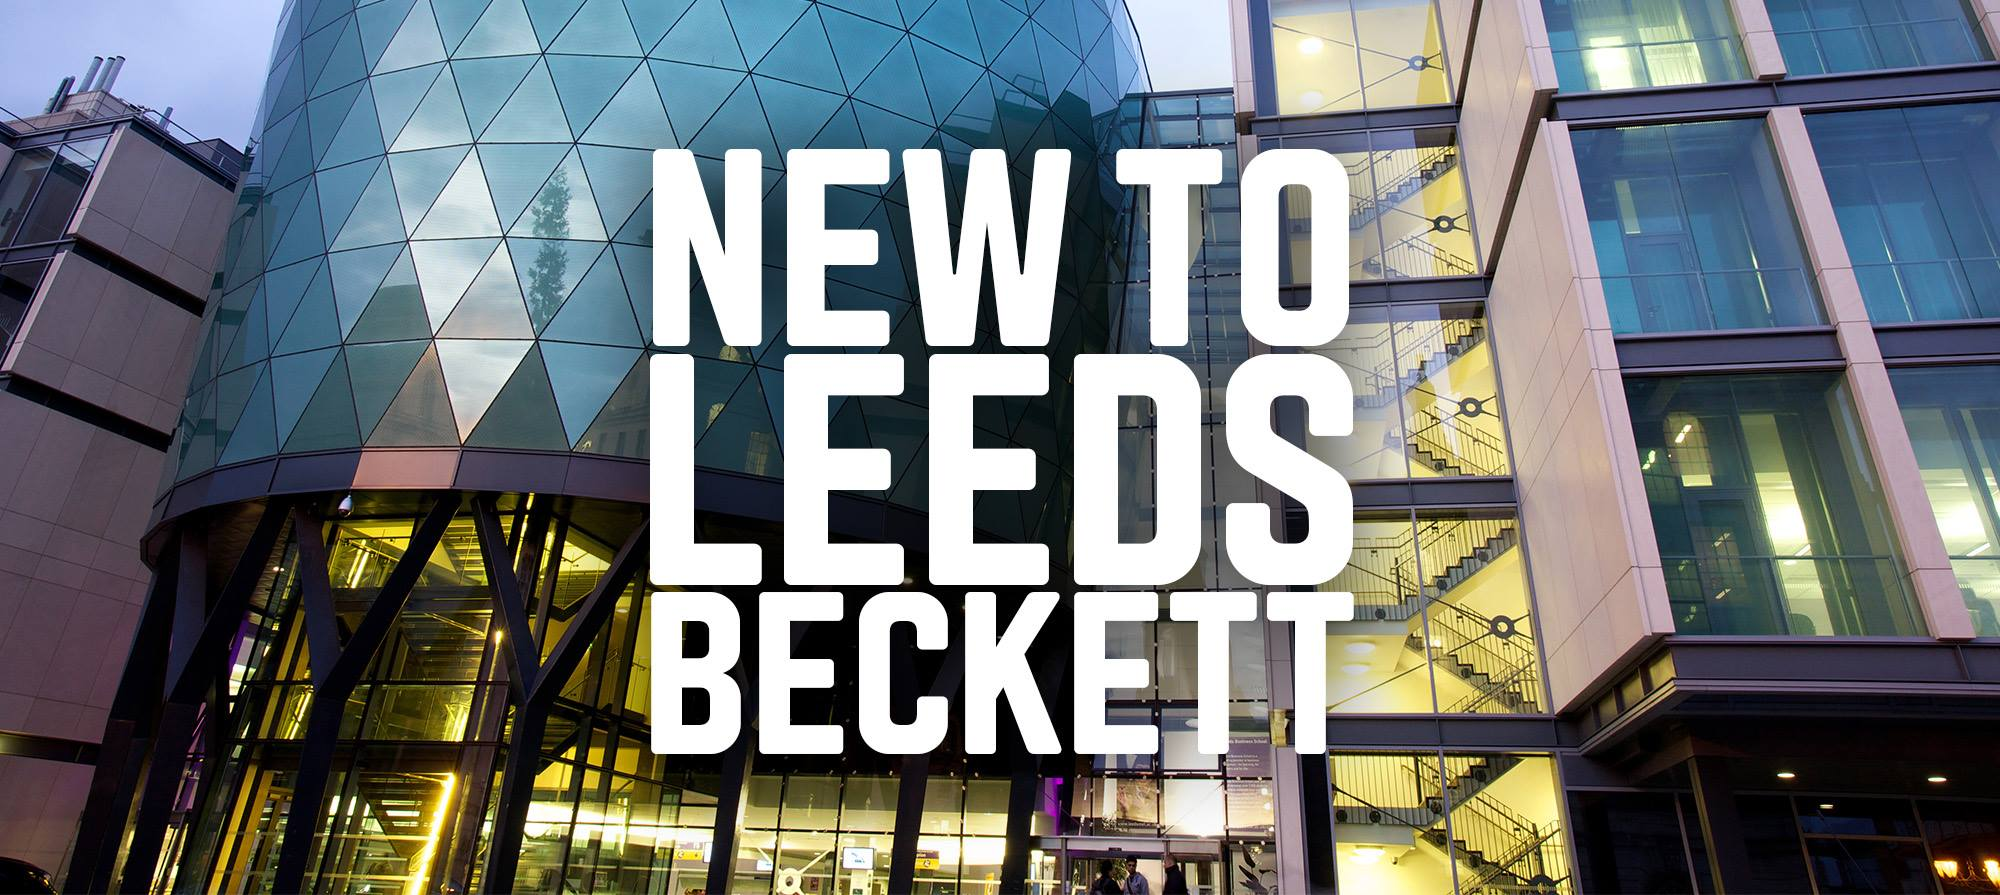 New to Leeds Beckett this January?